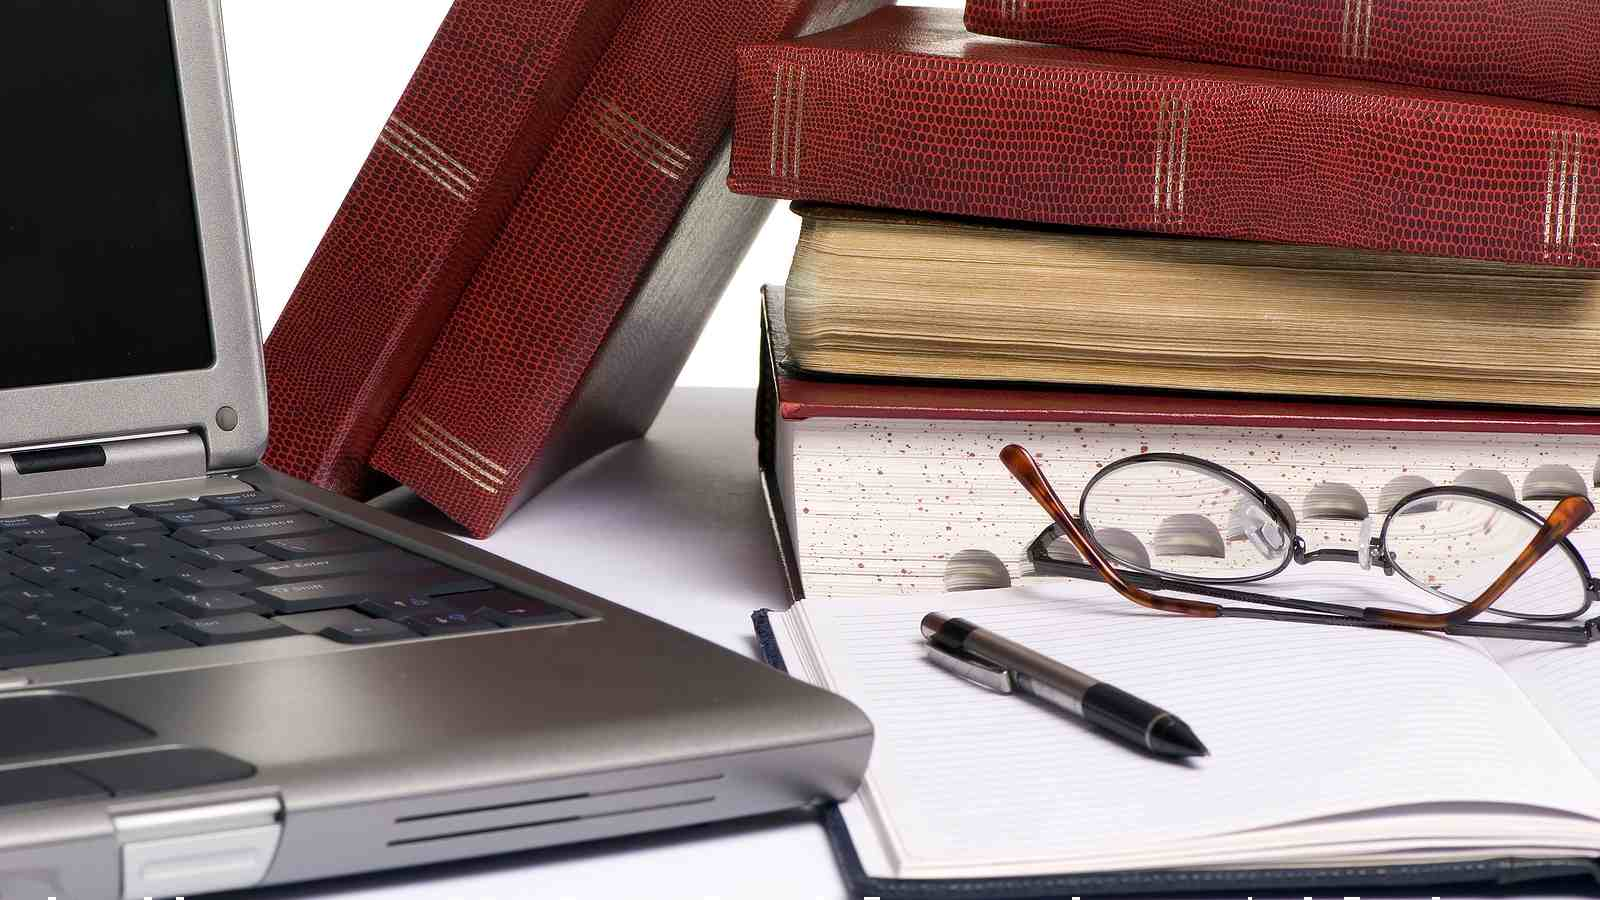 Research Programme : Confidently read, appraise and interpret research